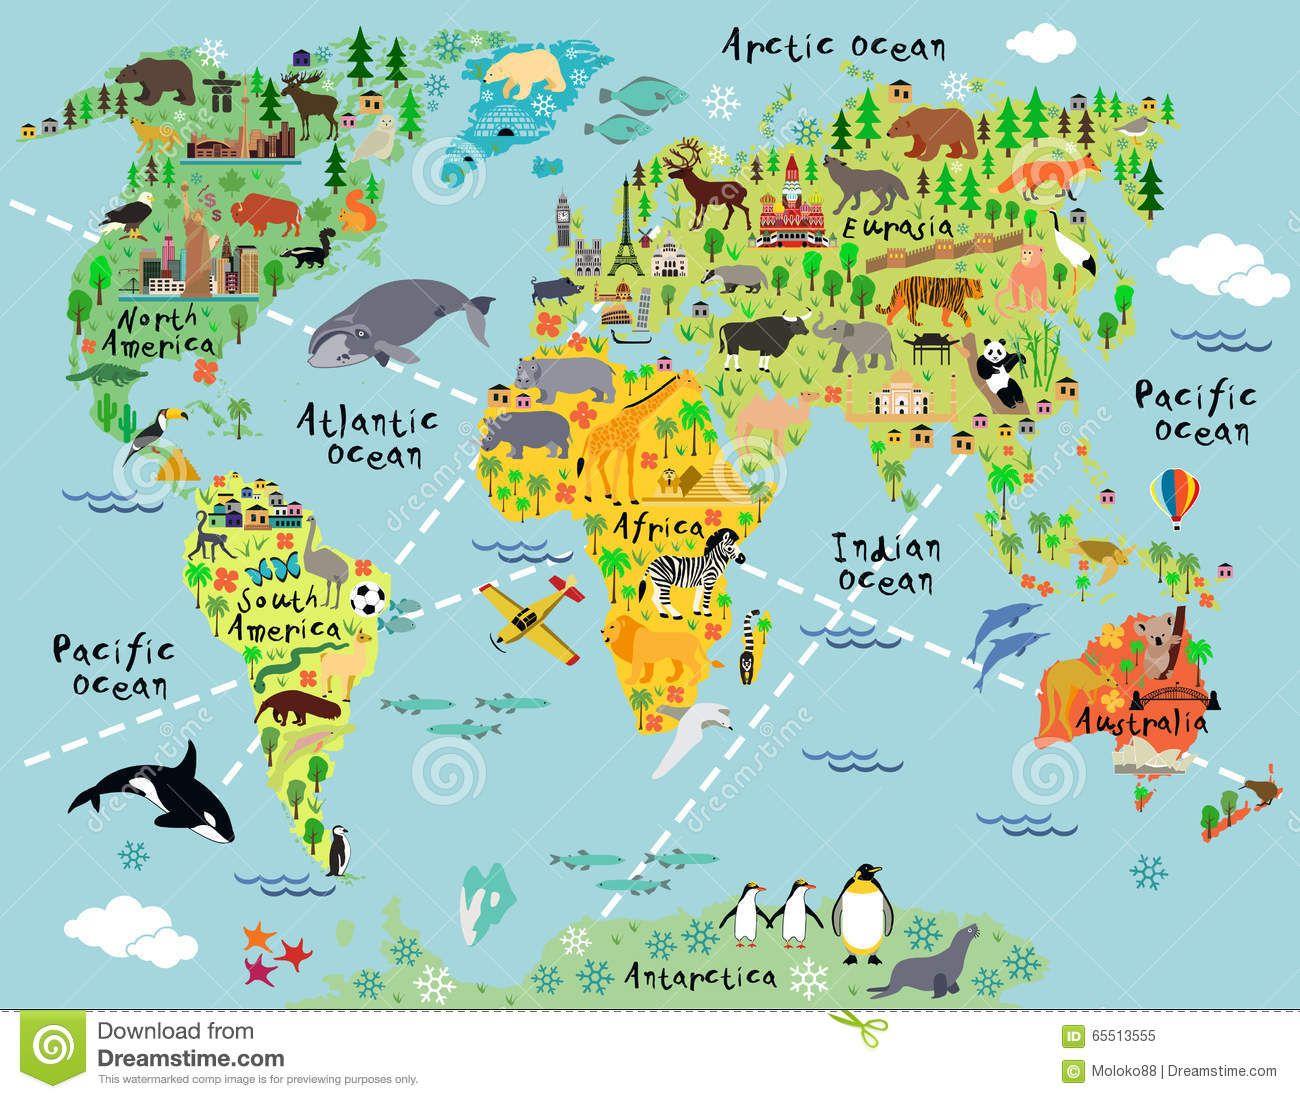 Cartoon world map download from over 59 million high quality stock cartoon world map download from over 59 million high quality stock photos images vectors sign up for free today image 65513555 gumiabroncs Gallery